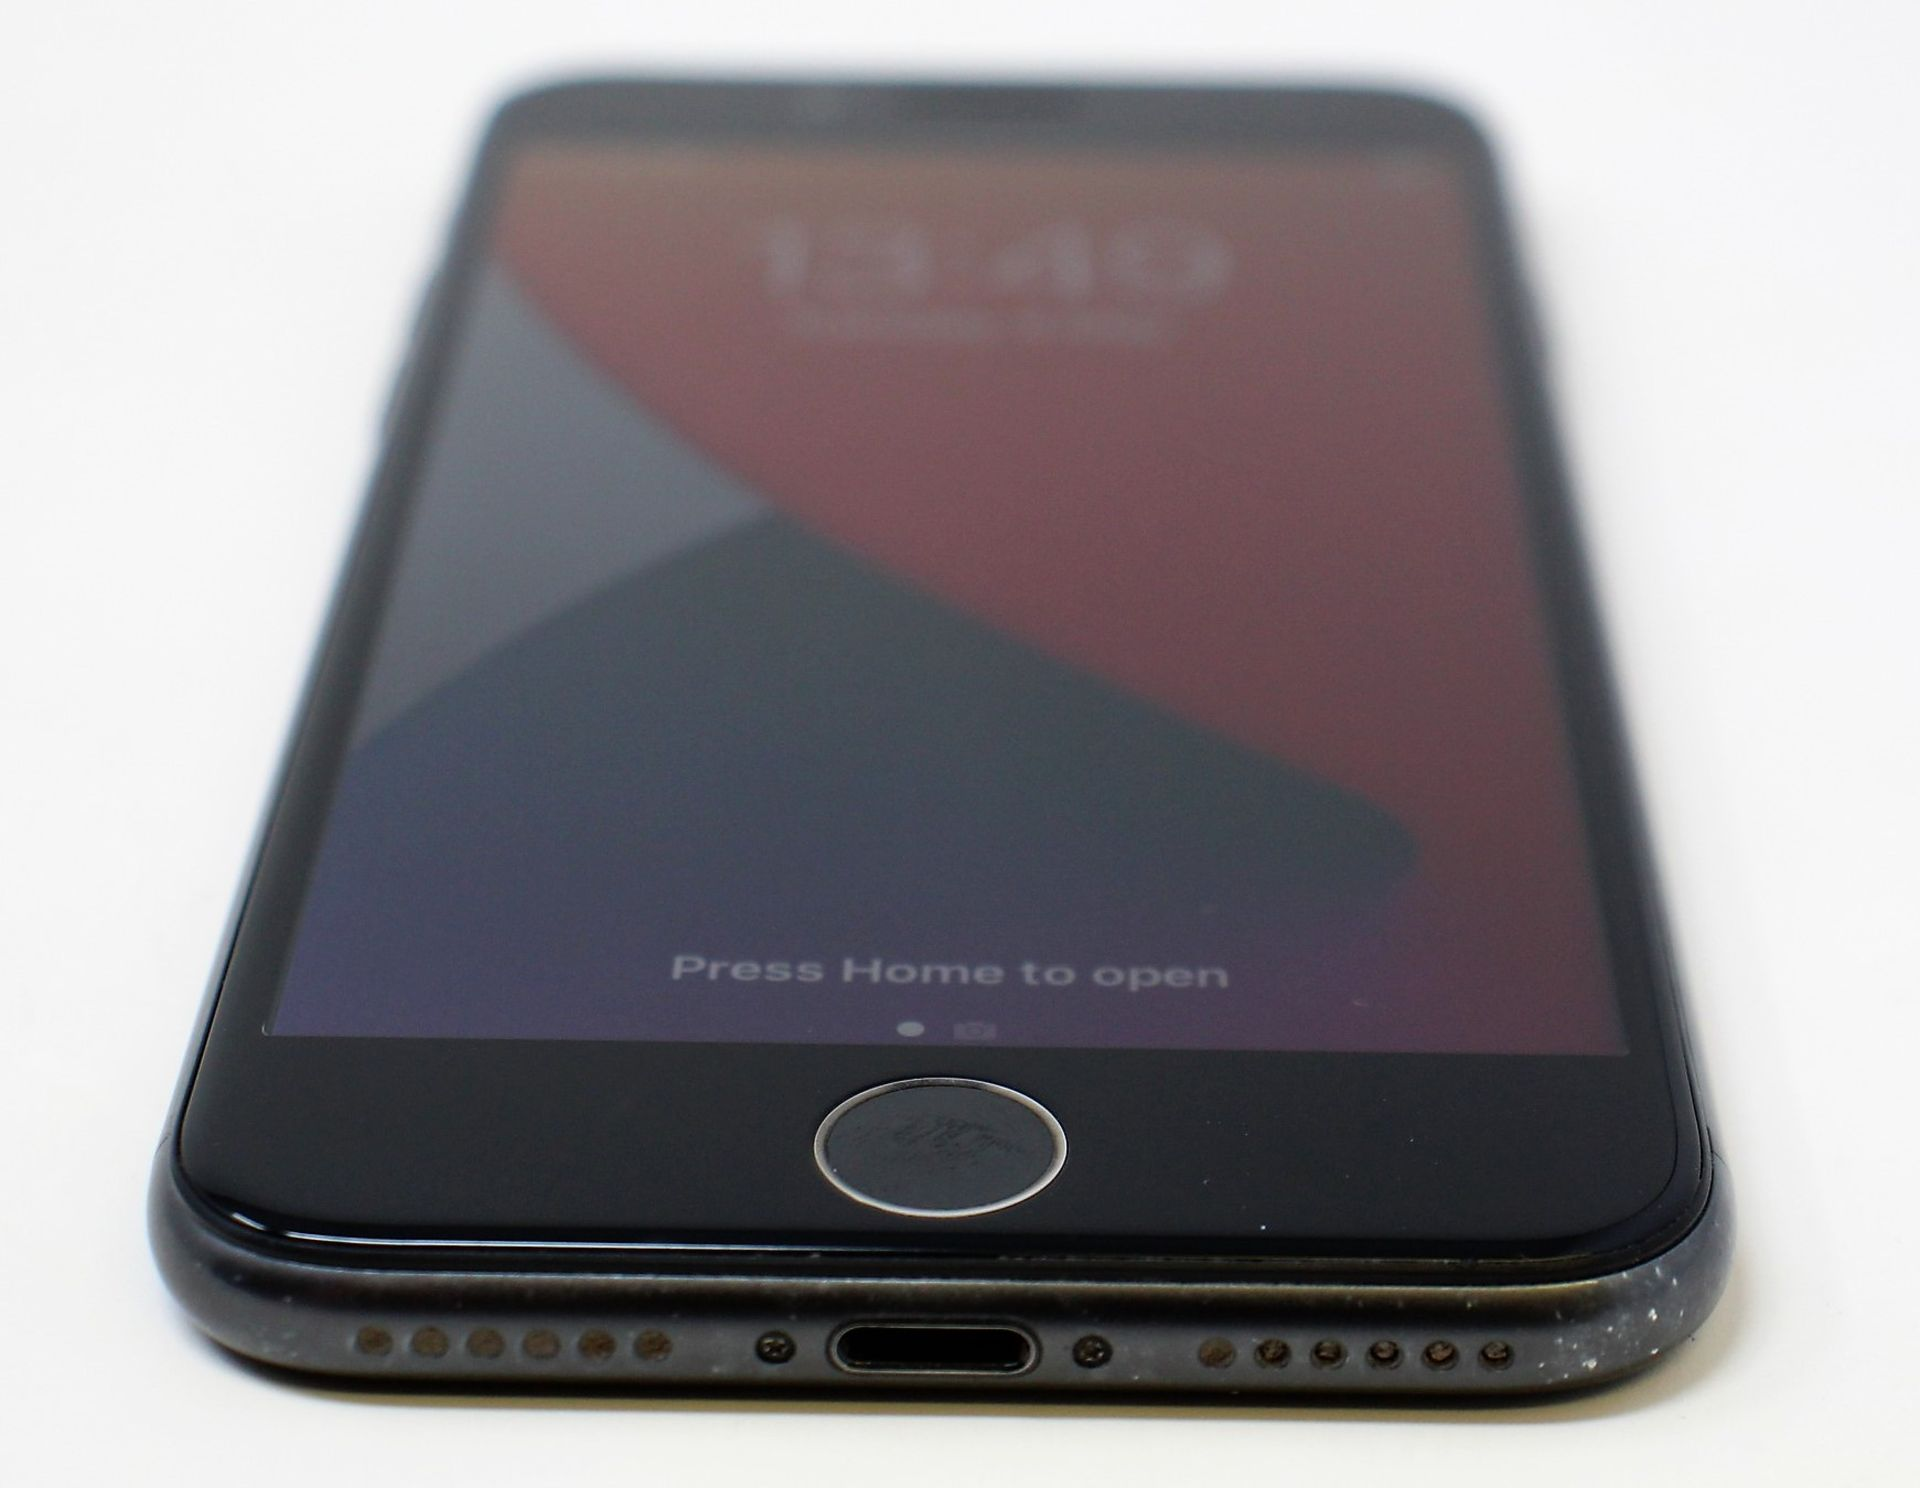 A pre-owned Apple iPhone 8 (AT&T/T-Mobile/Global/A1905) 64GB in Space Grey (iCloud activation clear, - Image 3 of 7